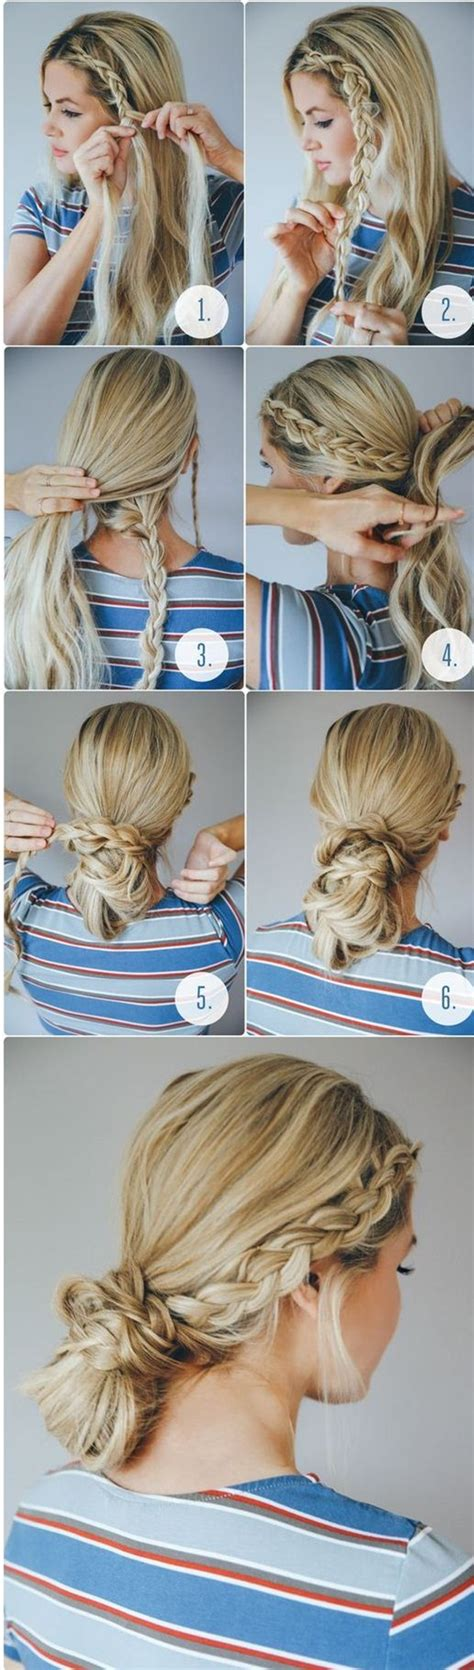 easy hairstyles for summer school 40 easy hairstyles for schools to try in 2016